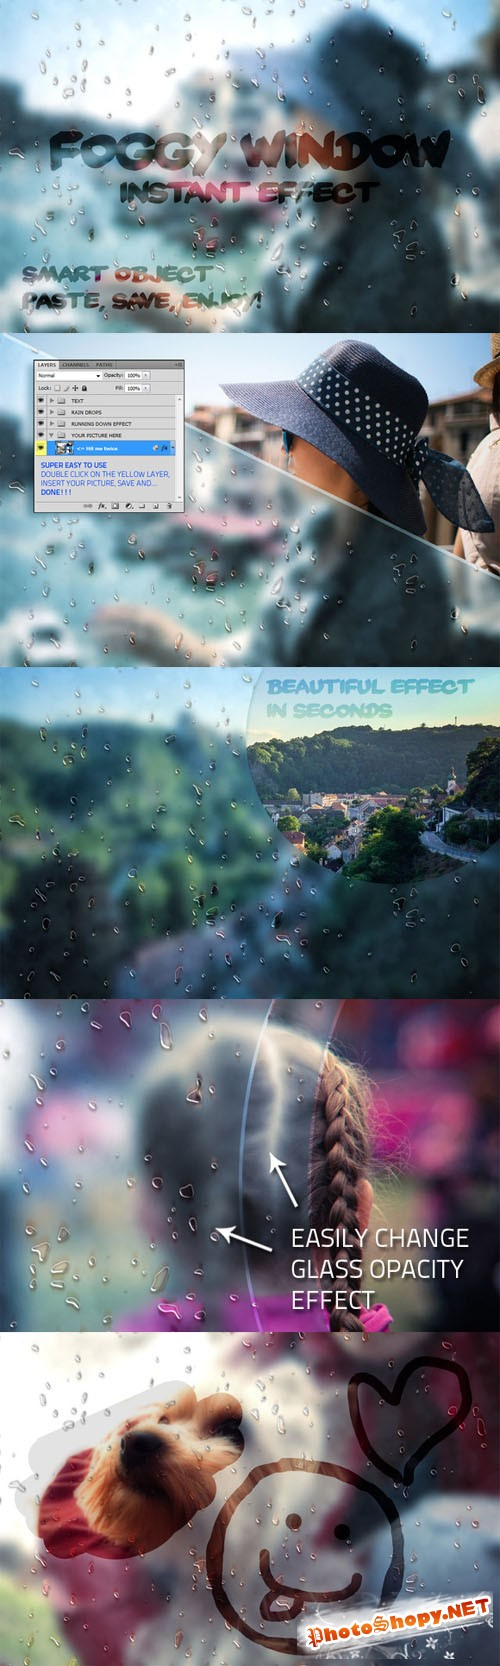 Creativemarket Foggy Window Instant Effect 52081